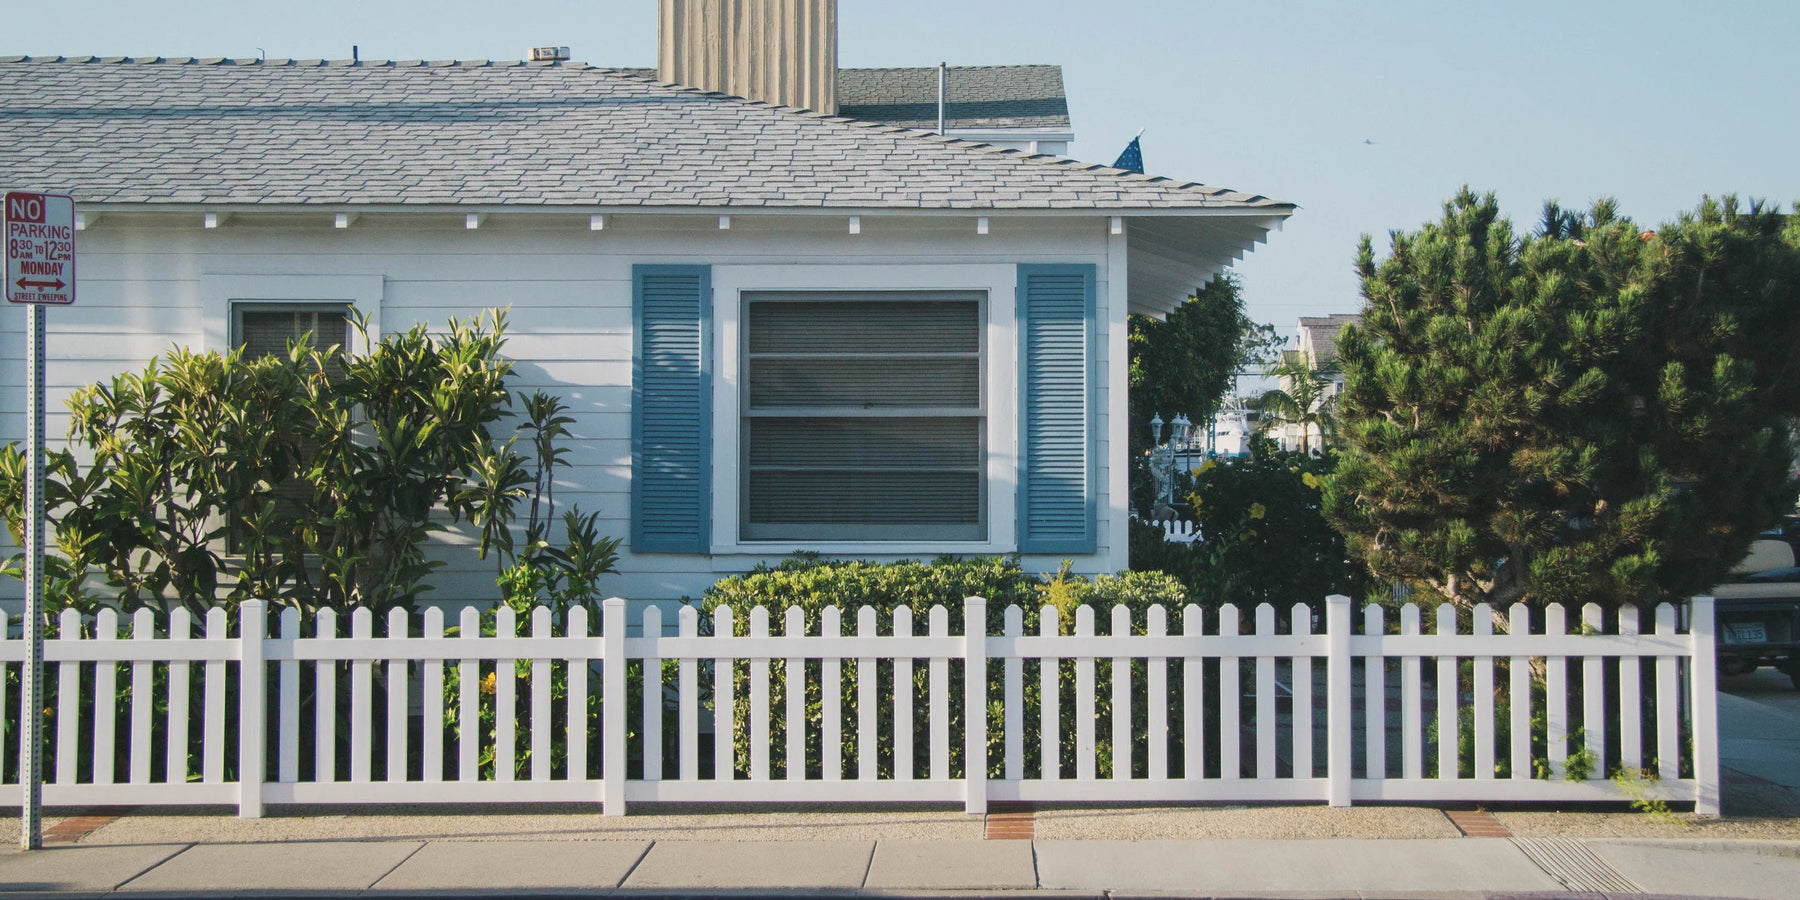 Street curbside corner featuring a white house with a open blue shutters and a white fence.